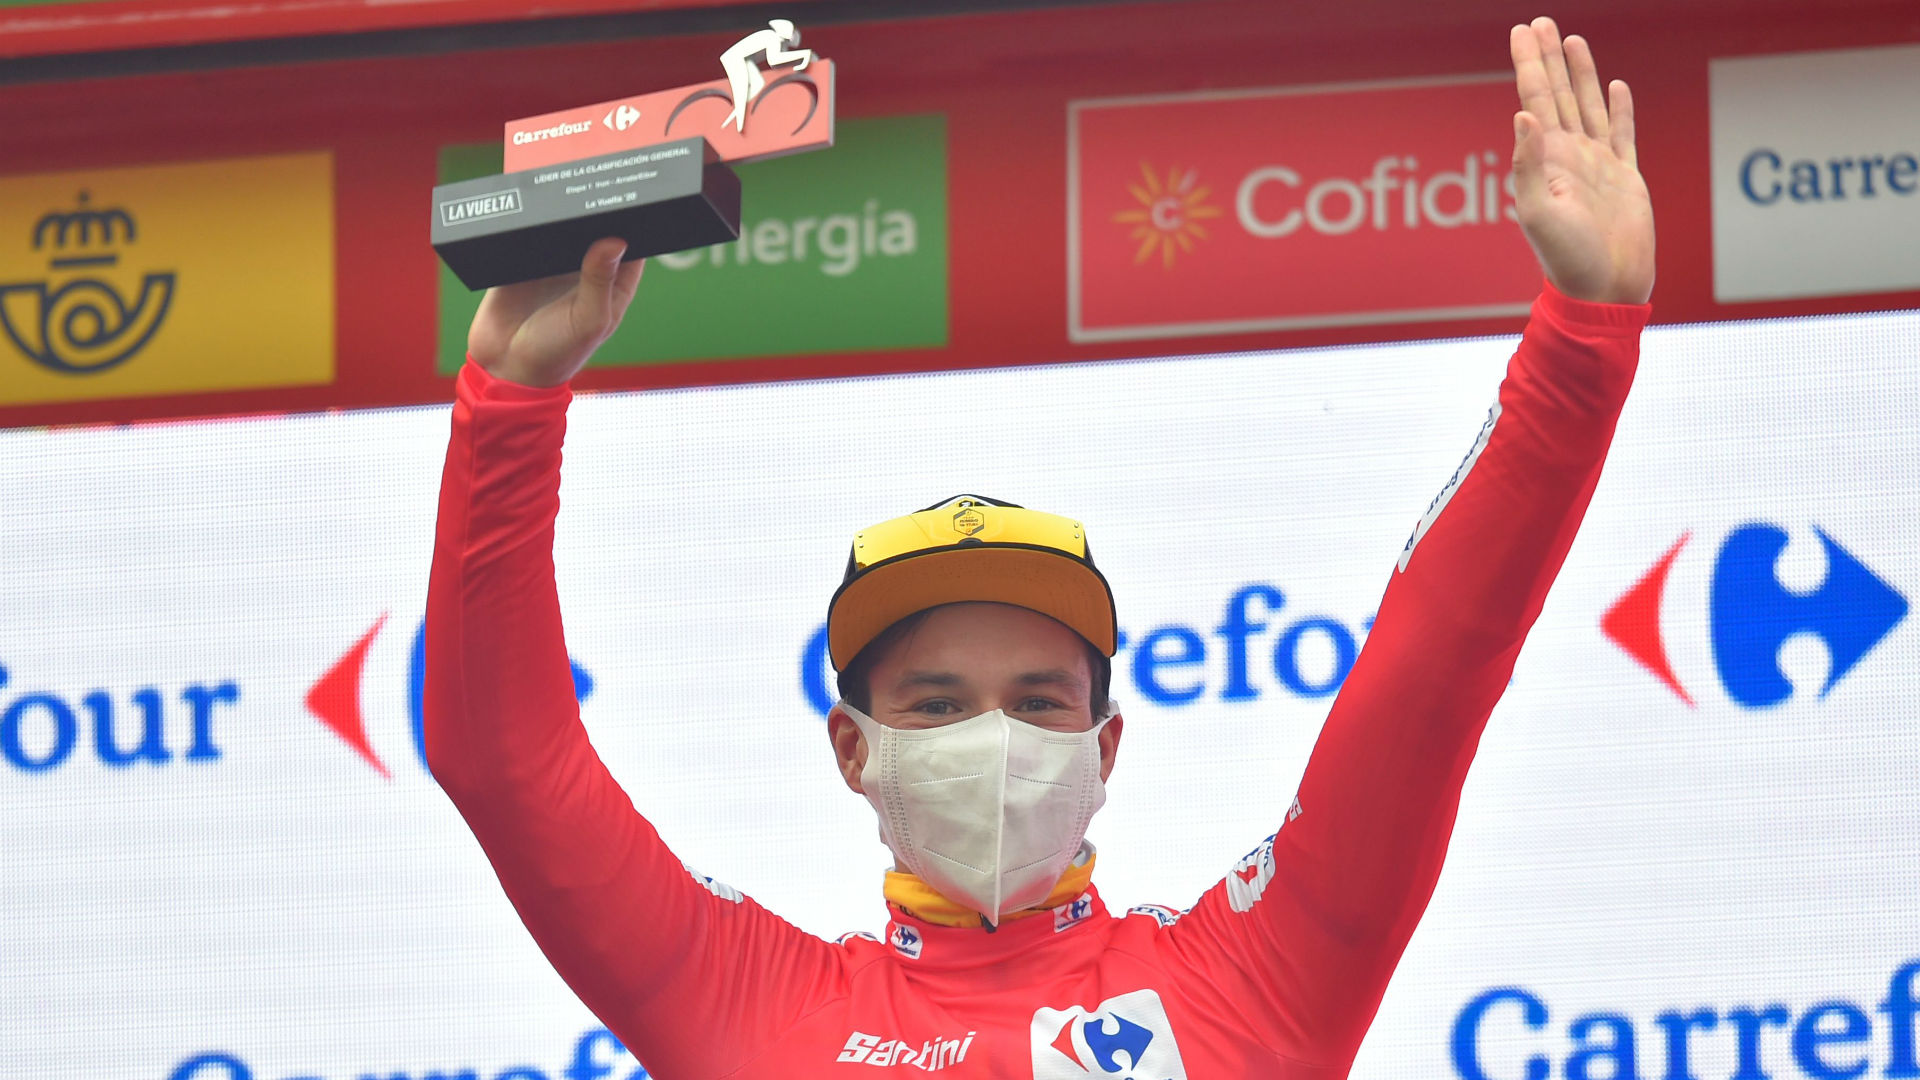 Vuelta a Espana: Roglic begins red jersey defence with victory